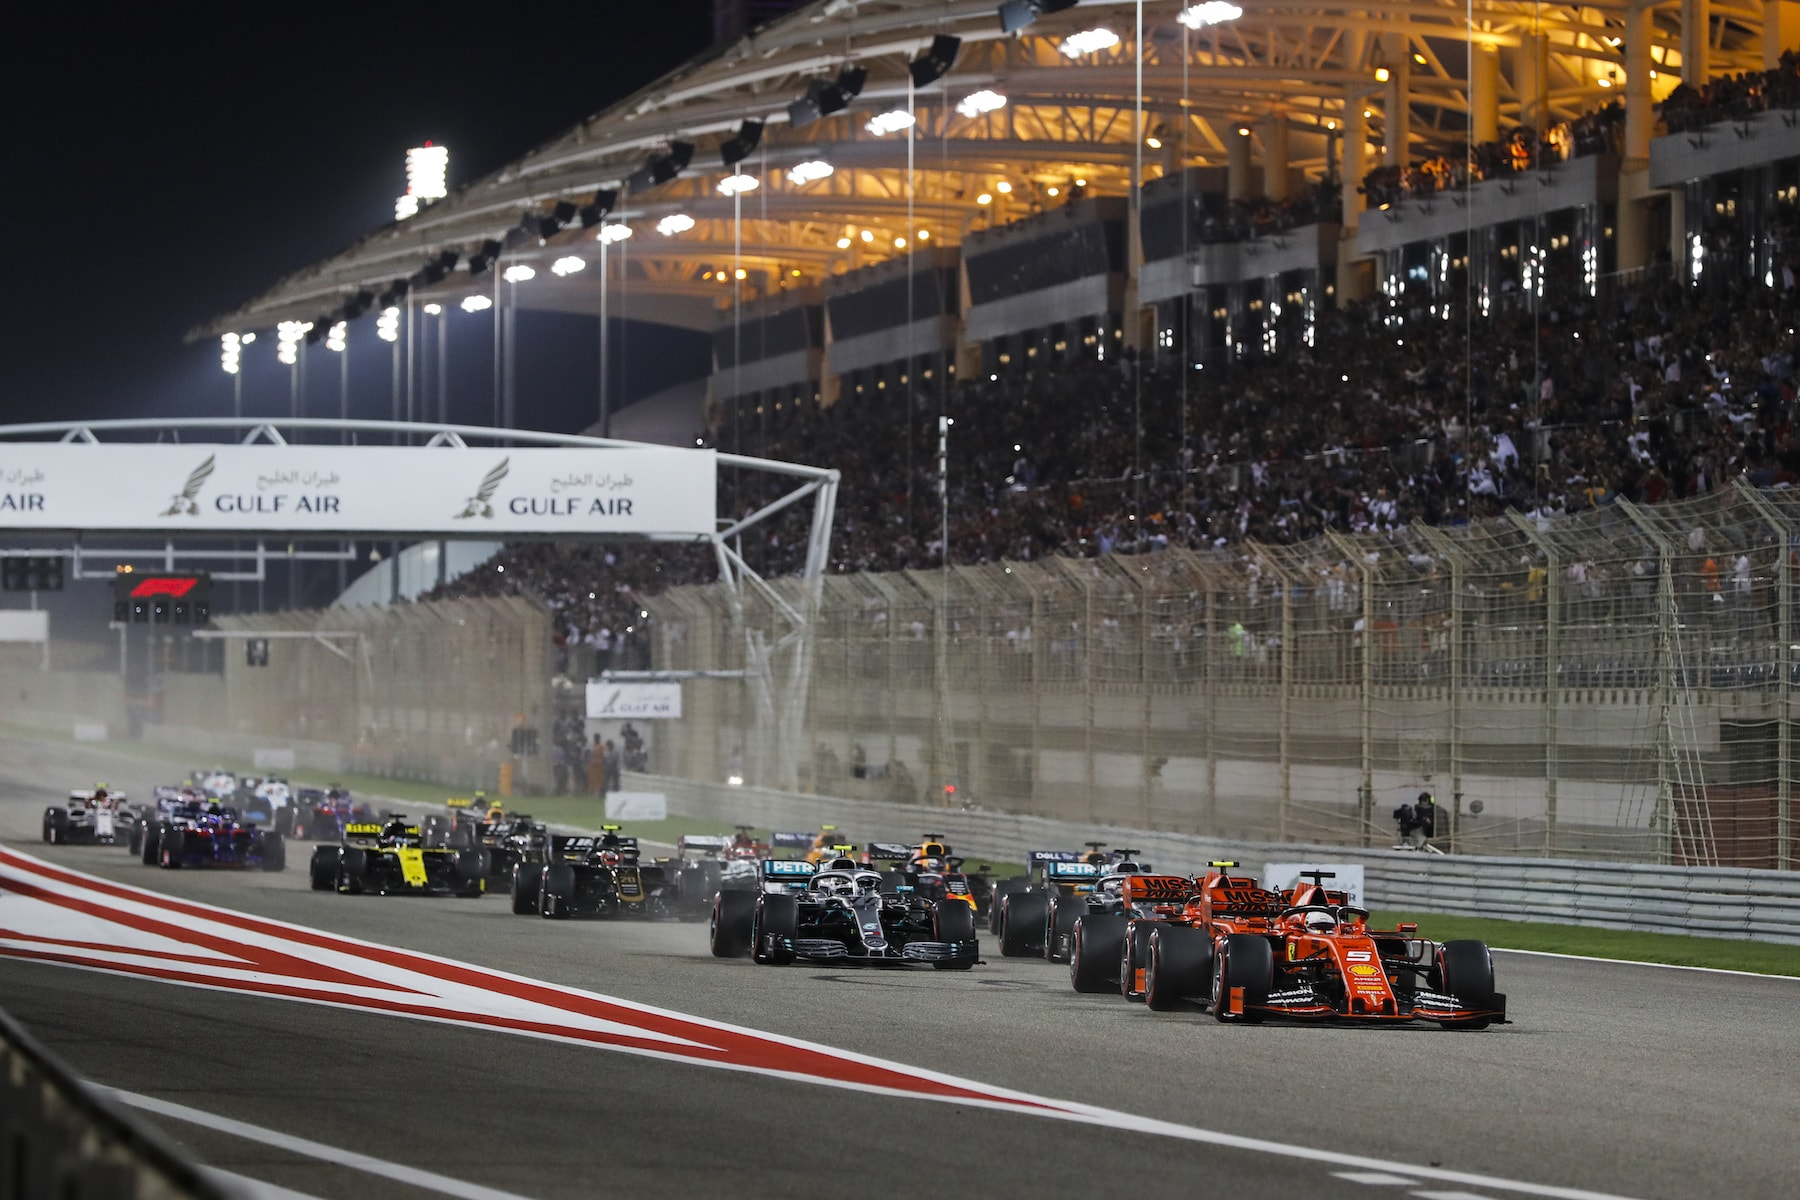 3 2 4 2019 Bahrain GP start 2 copy.jpg